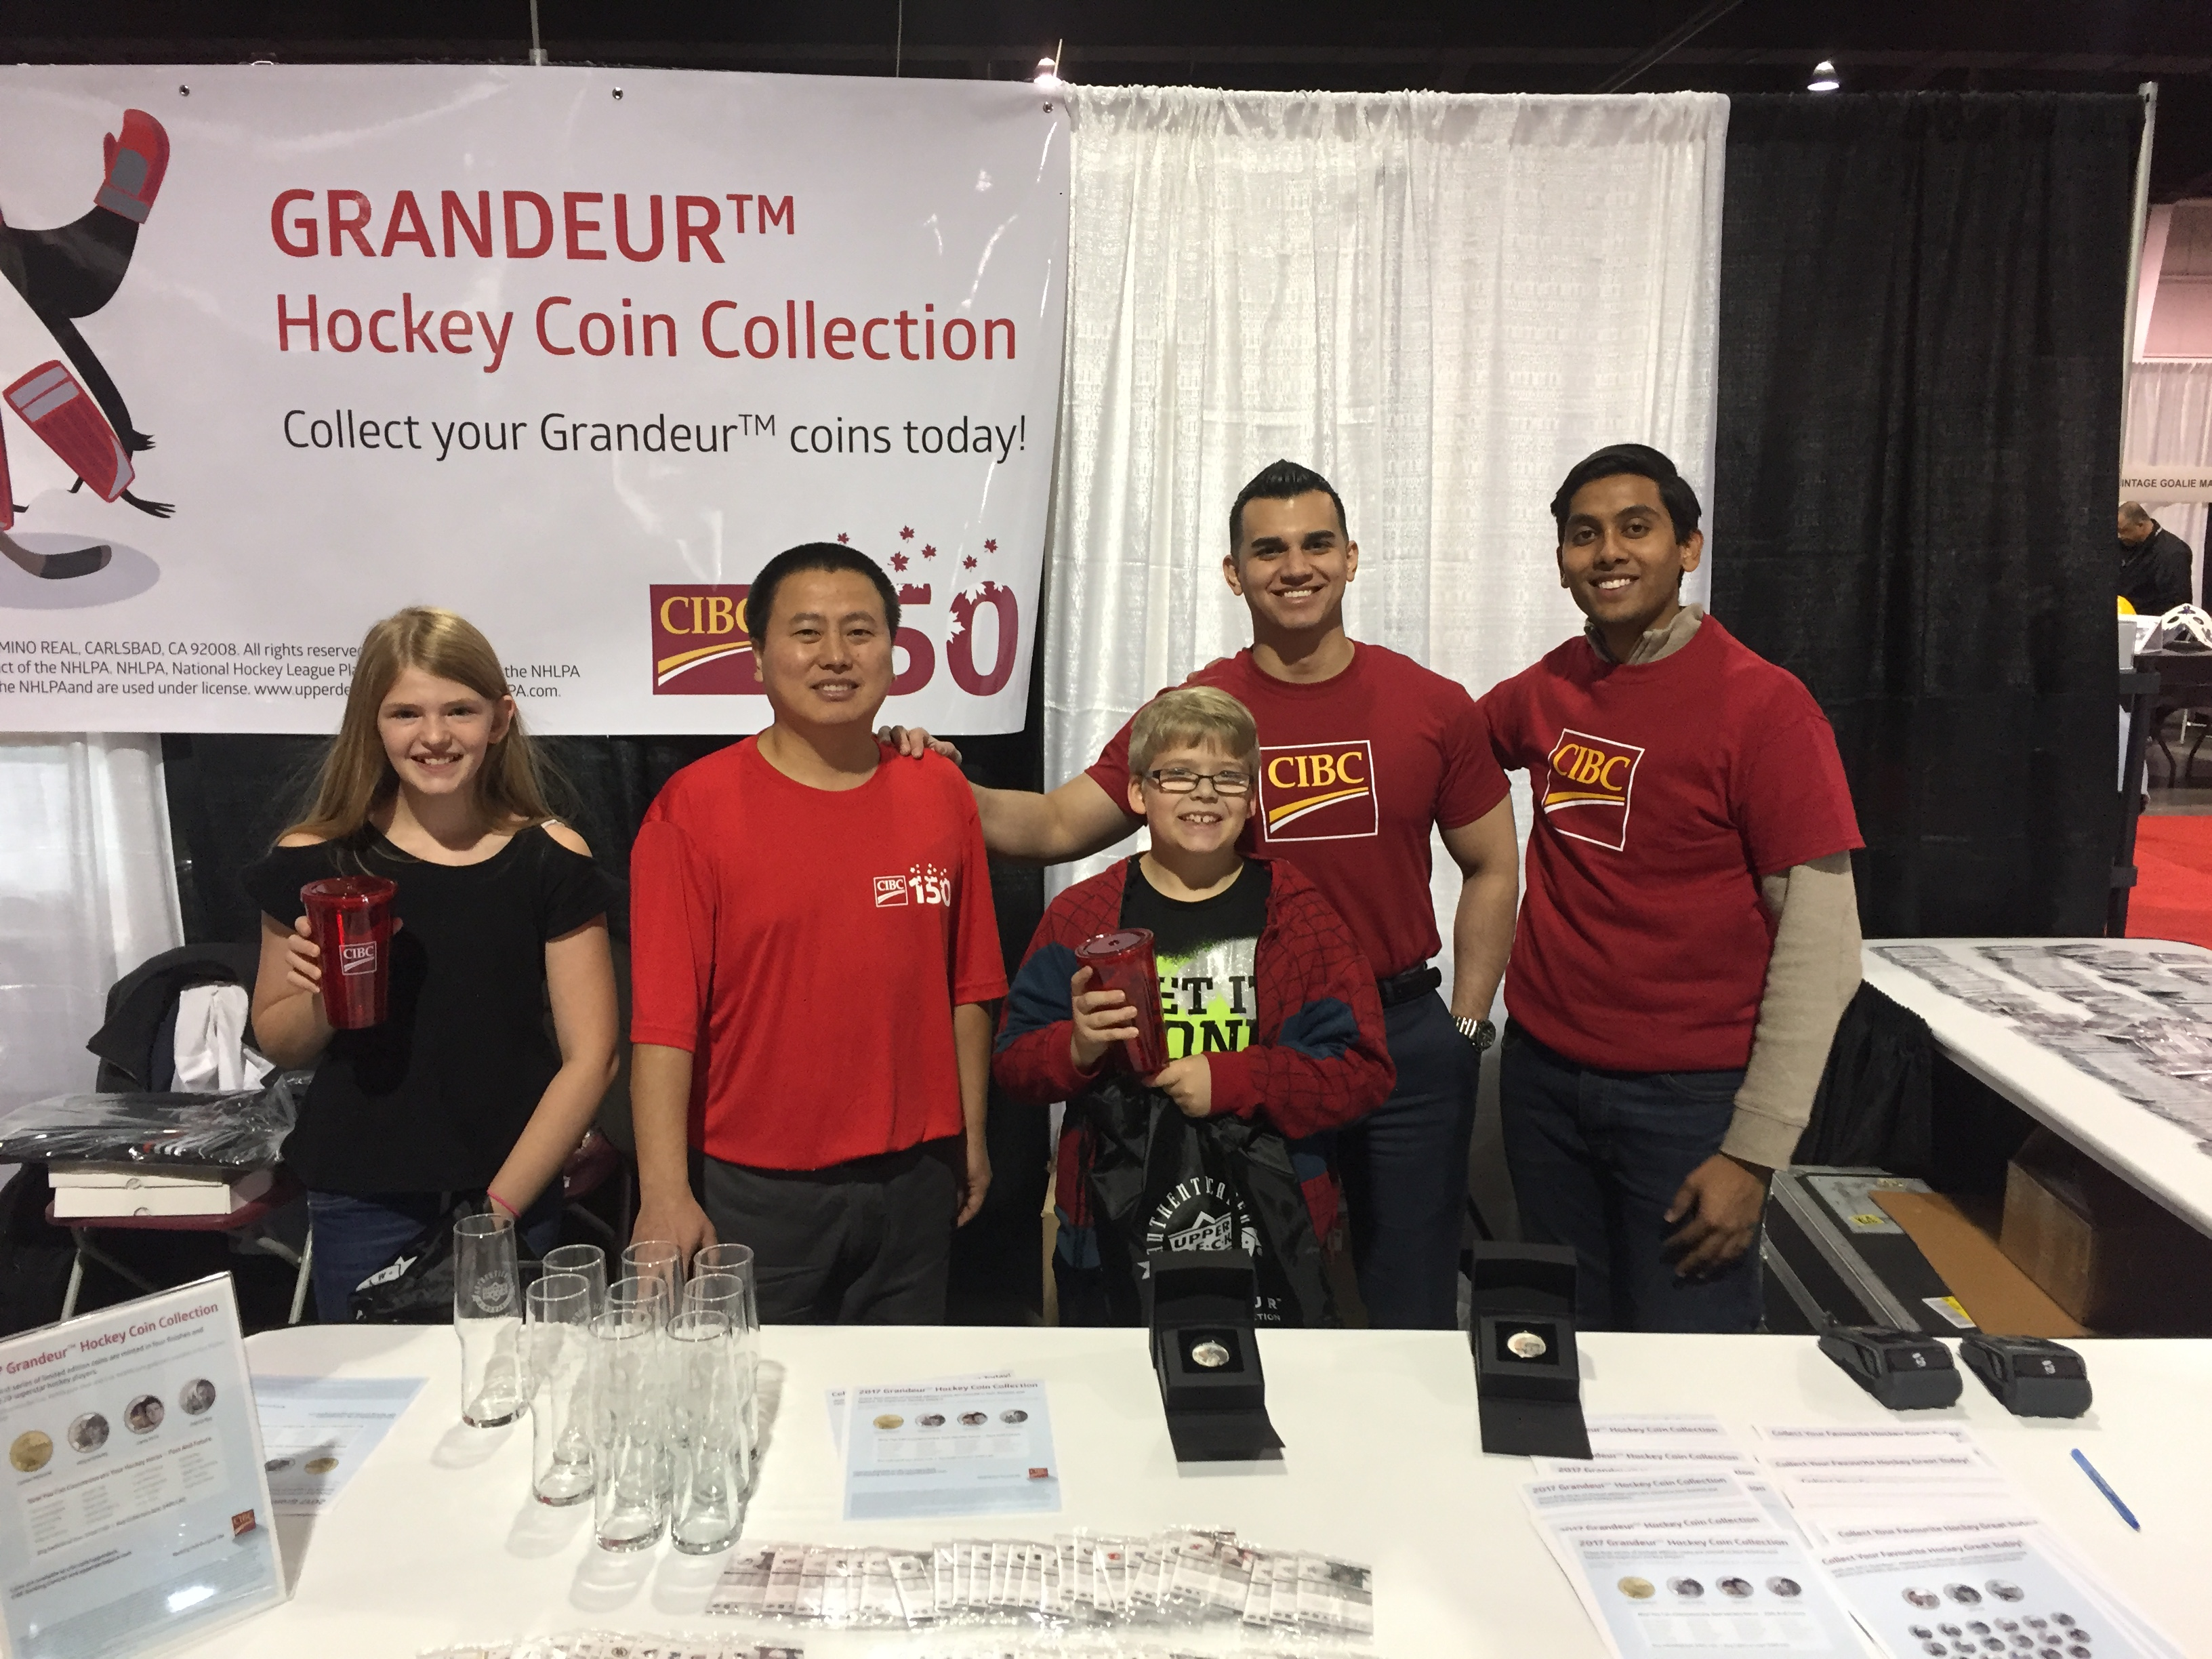 Grandeur-Upper-Deck-NHLPA-Hockey-Coins-CIBC-Booth-Expo-Customer-Appreciation